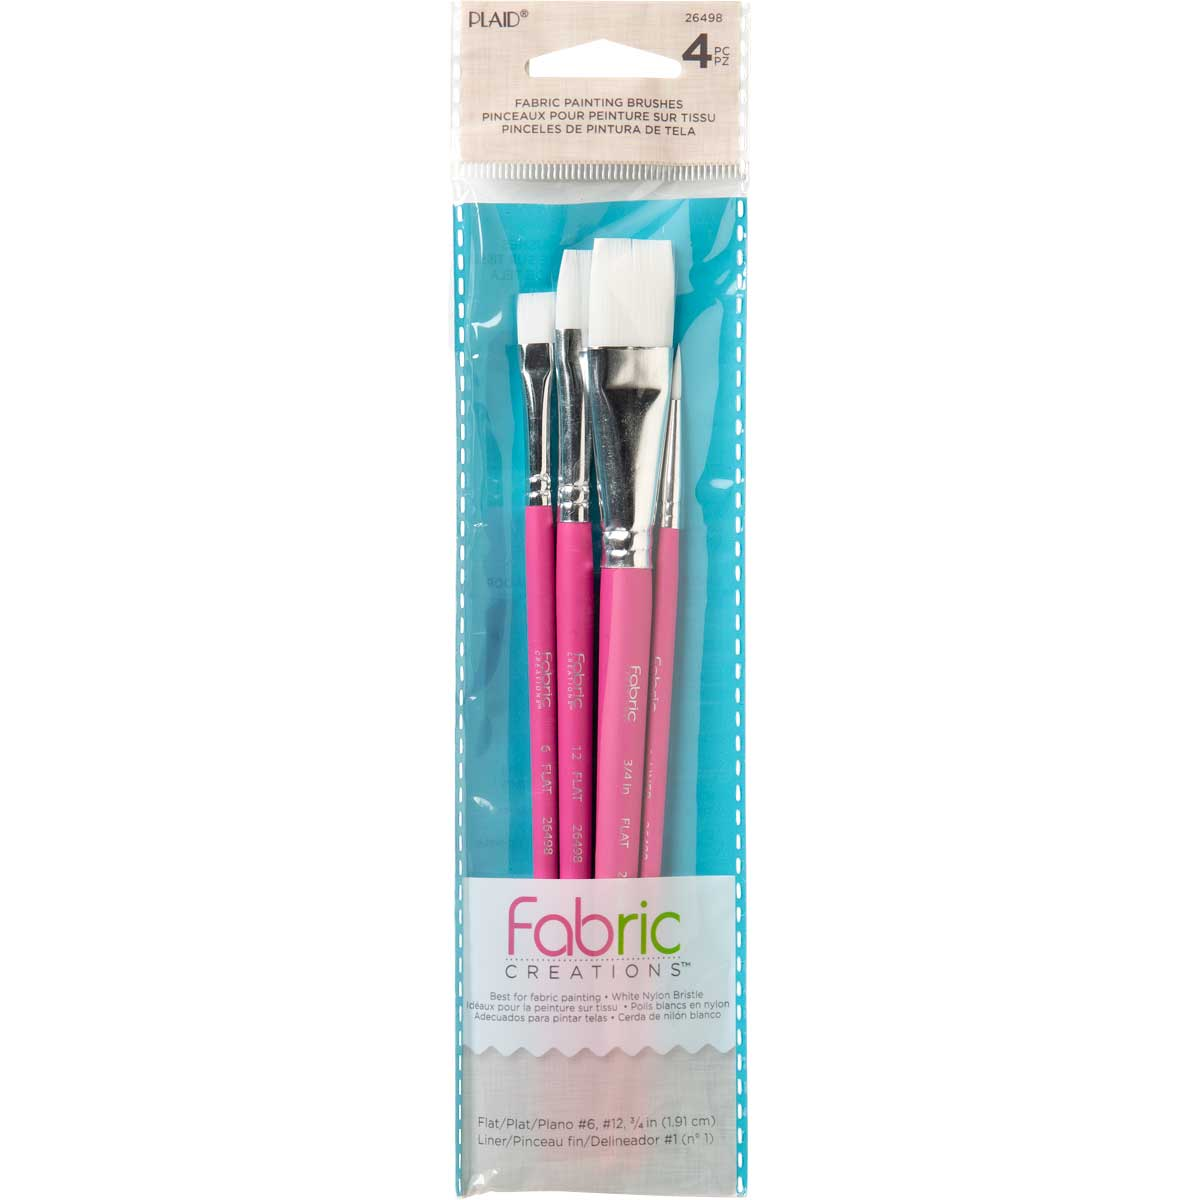 Fabric Creations™ Brush Set - Fabric Painting Set